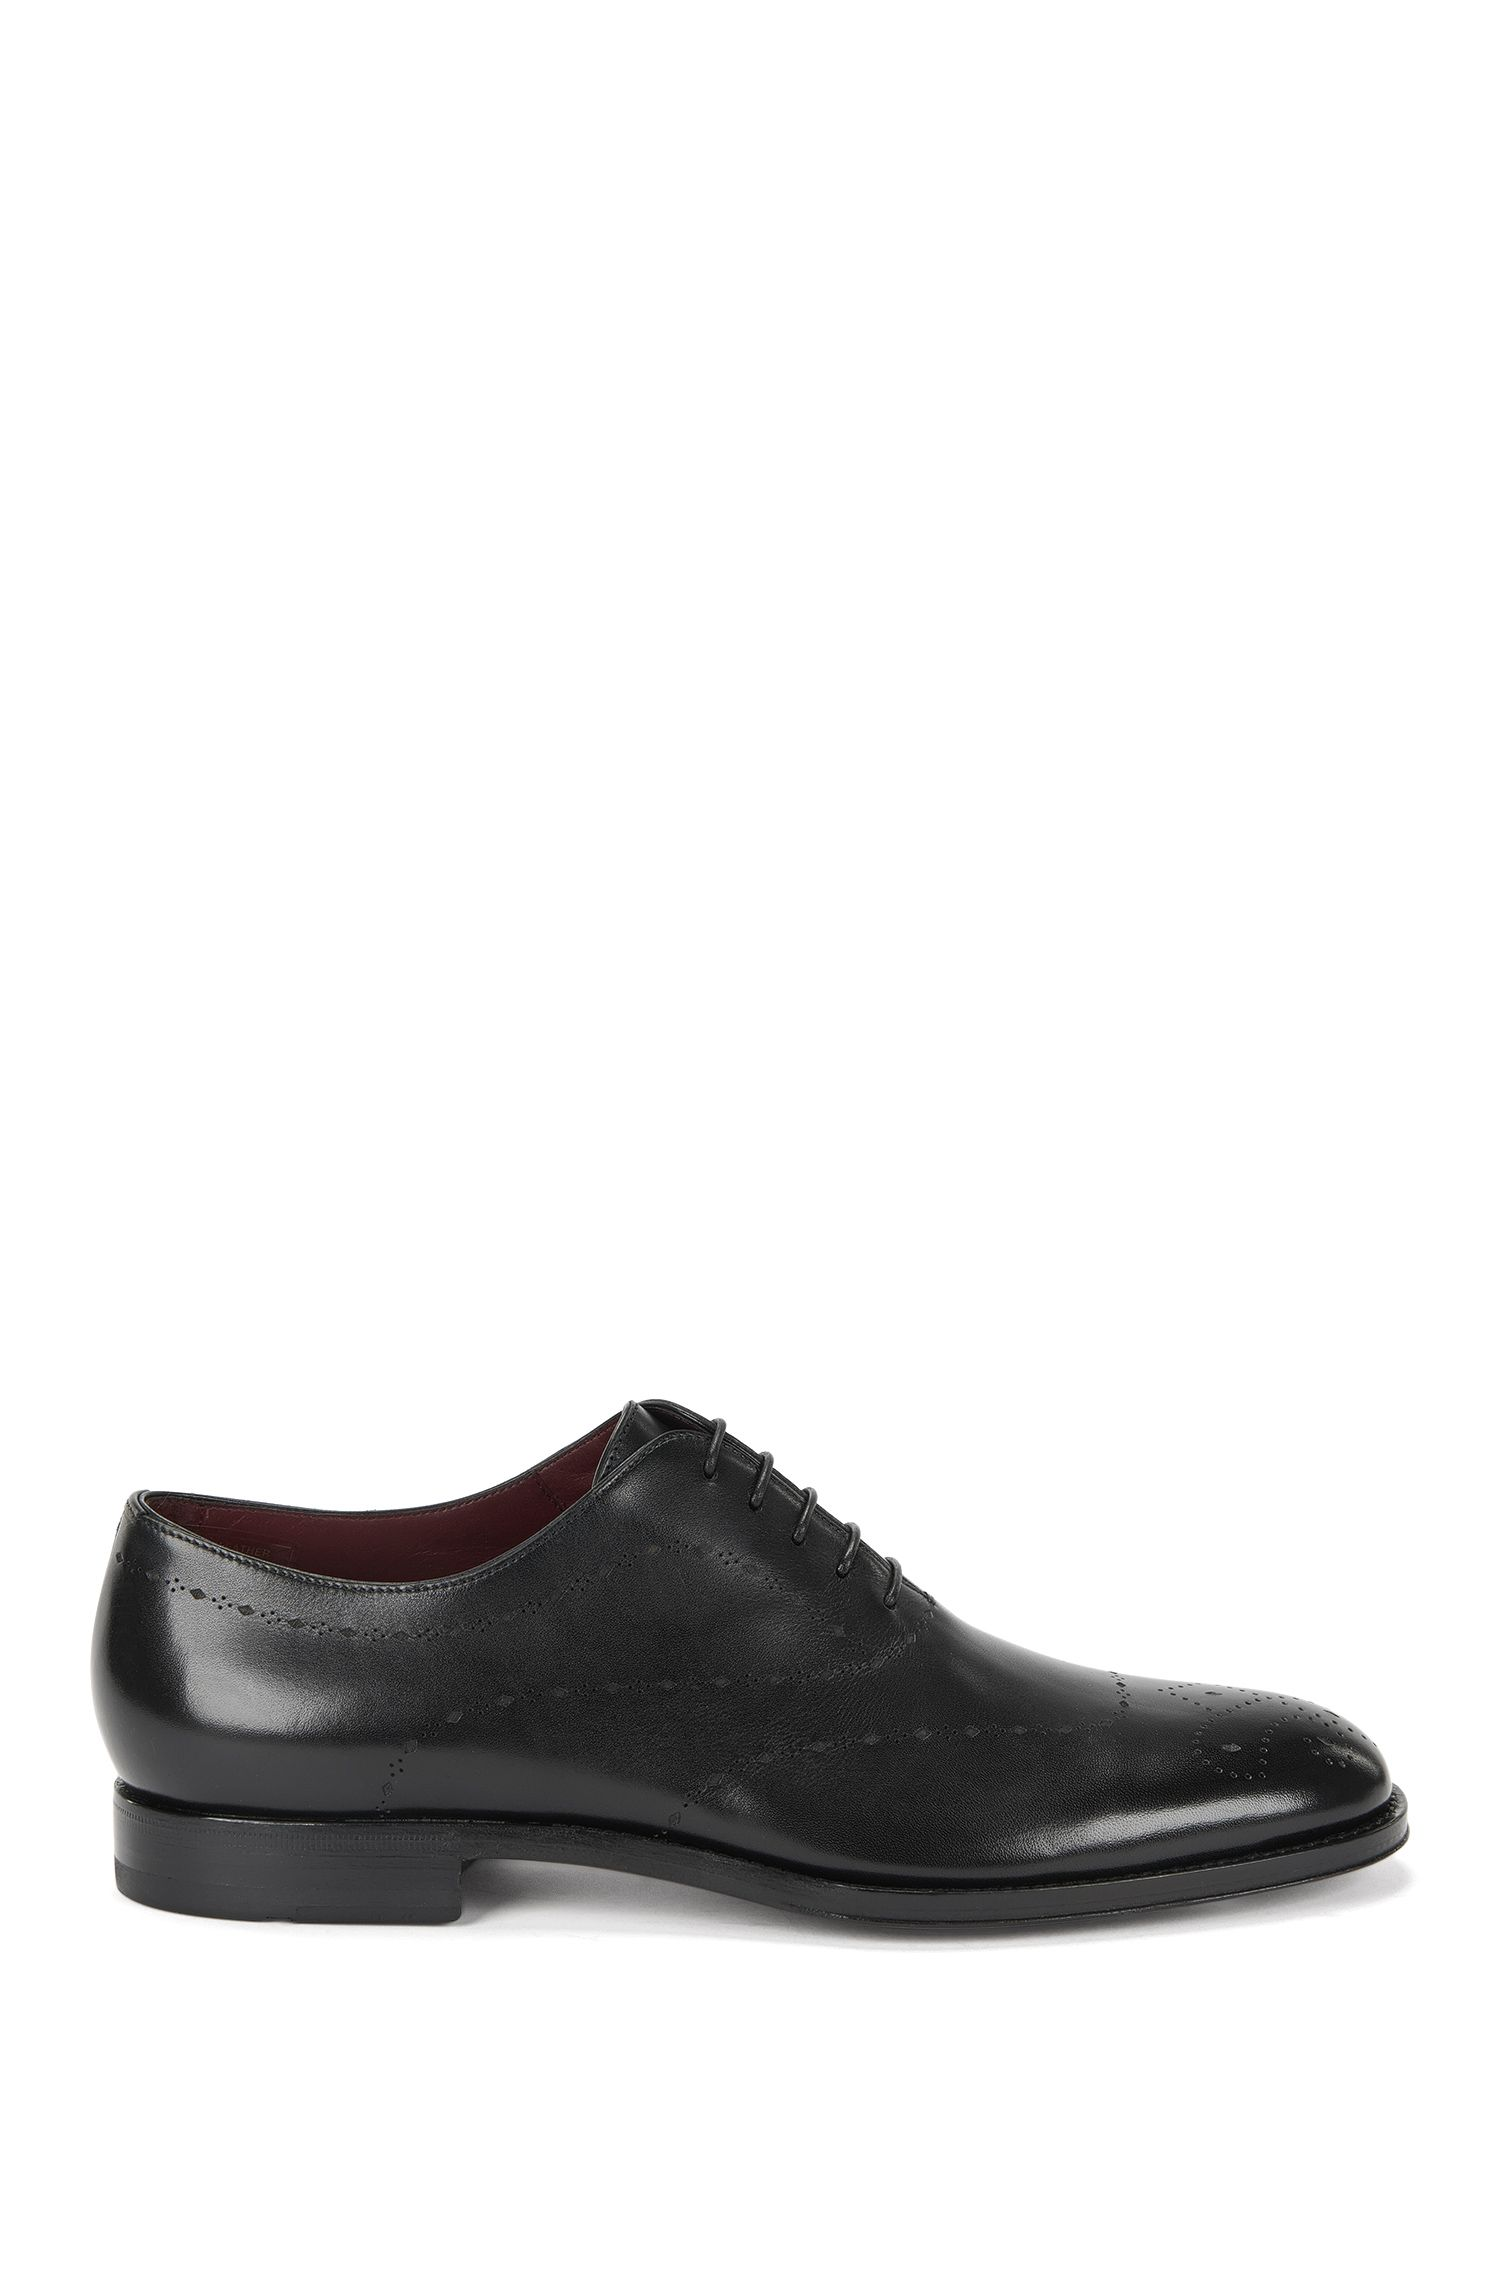 Leather lace-up shoes with perforated patterning: 'T-Sartoria_Oxfr_lt'